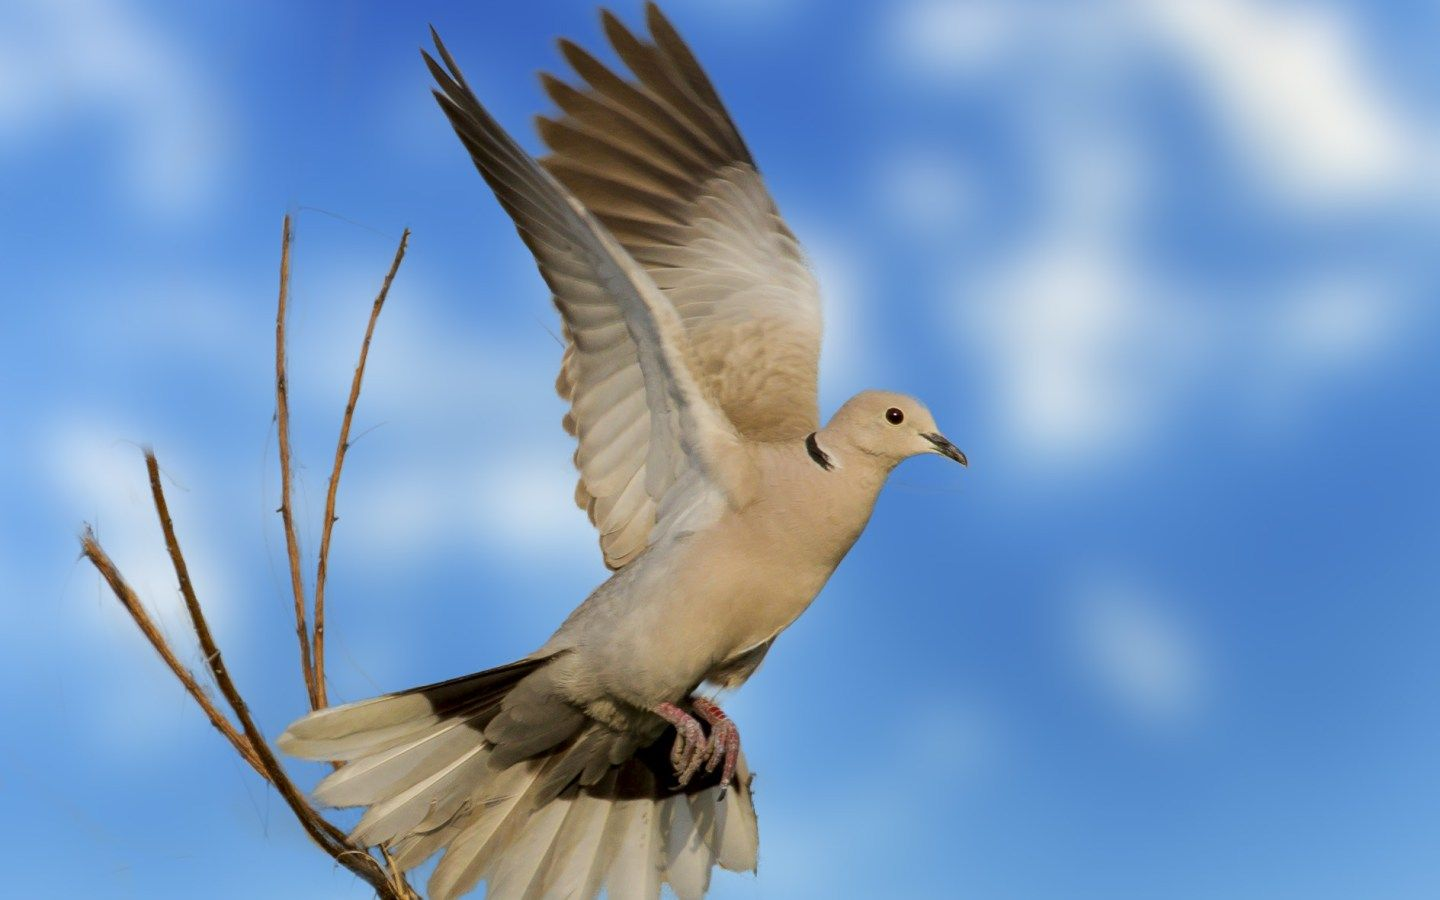 Dove Flying Indian Wild Birds Download Hd Desktop Mobile Wallpaper And Background Images Ultra Fine Digital Art Photography Background Images Amazing Paintings